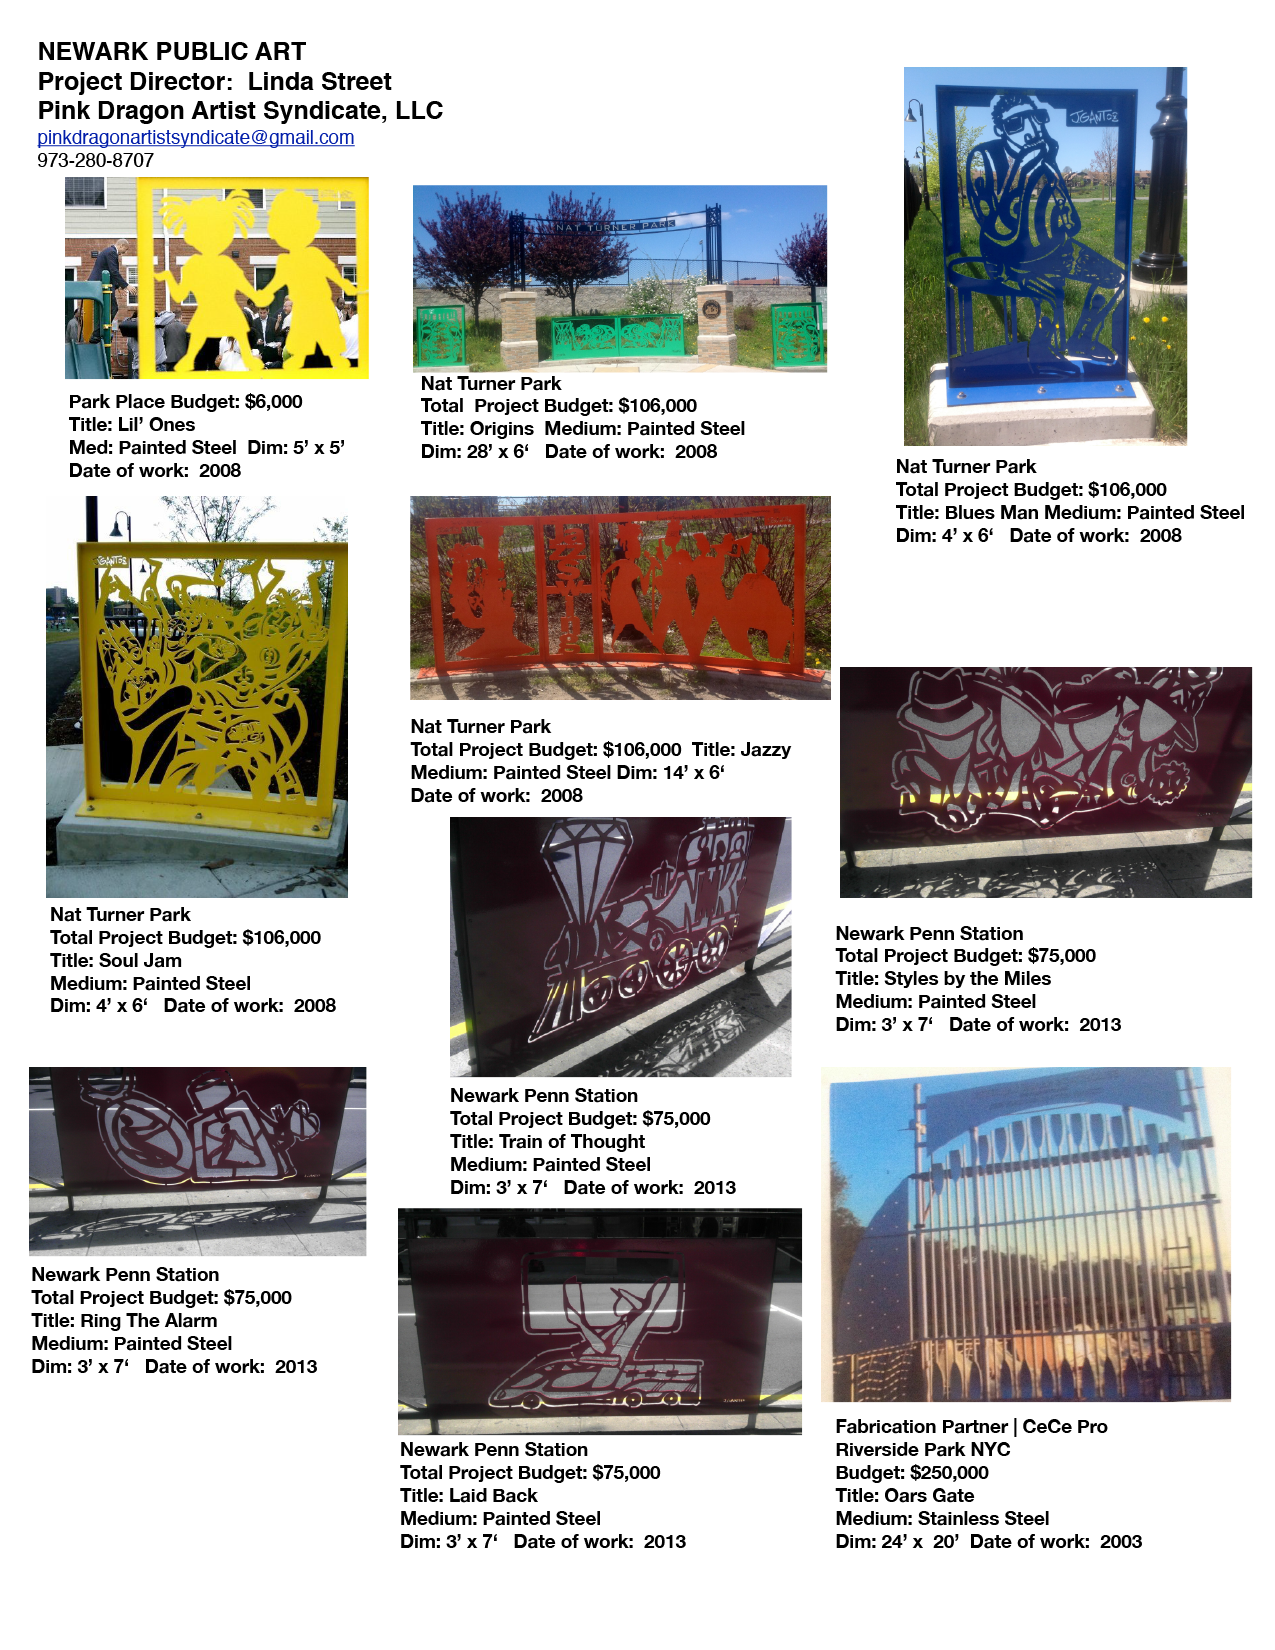 PDAS PUBLIC ART PROJECTS SHEET